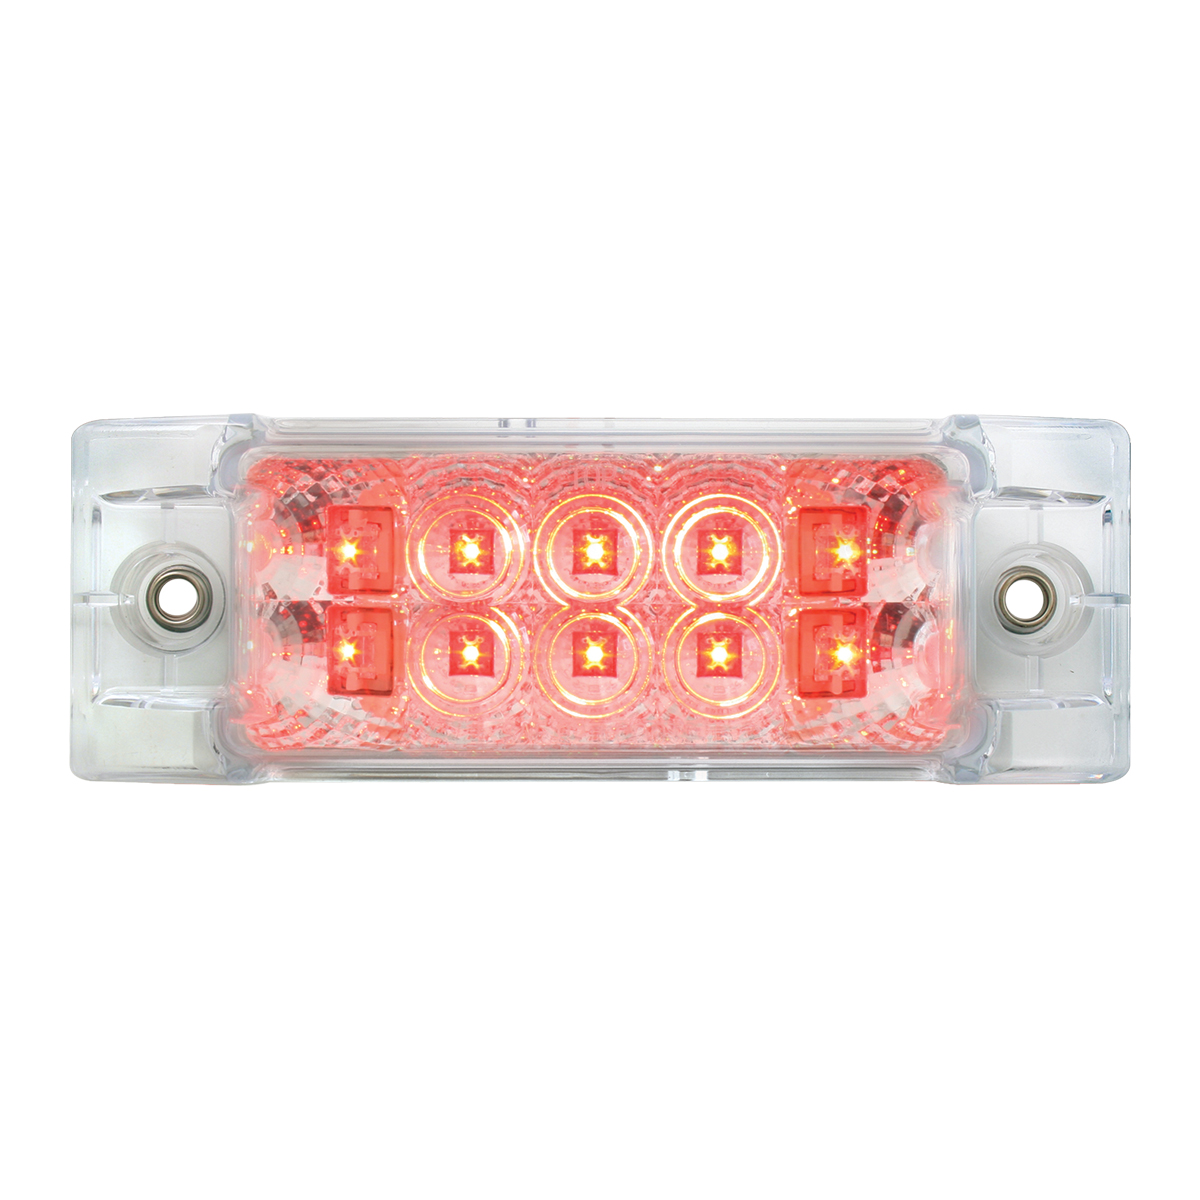 76213 Rectangular Wide Angle Spyder LED Marker Light in Red/Clear